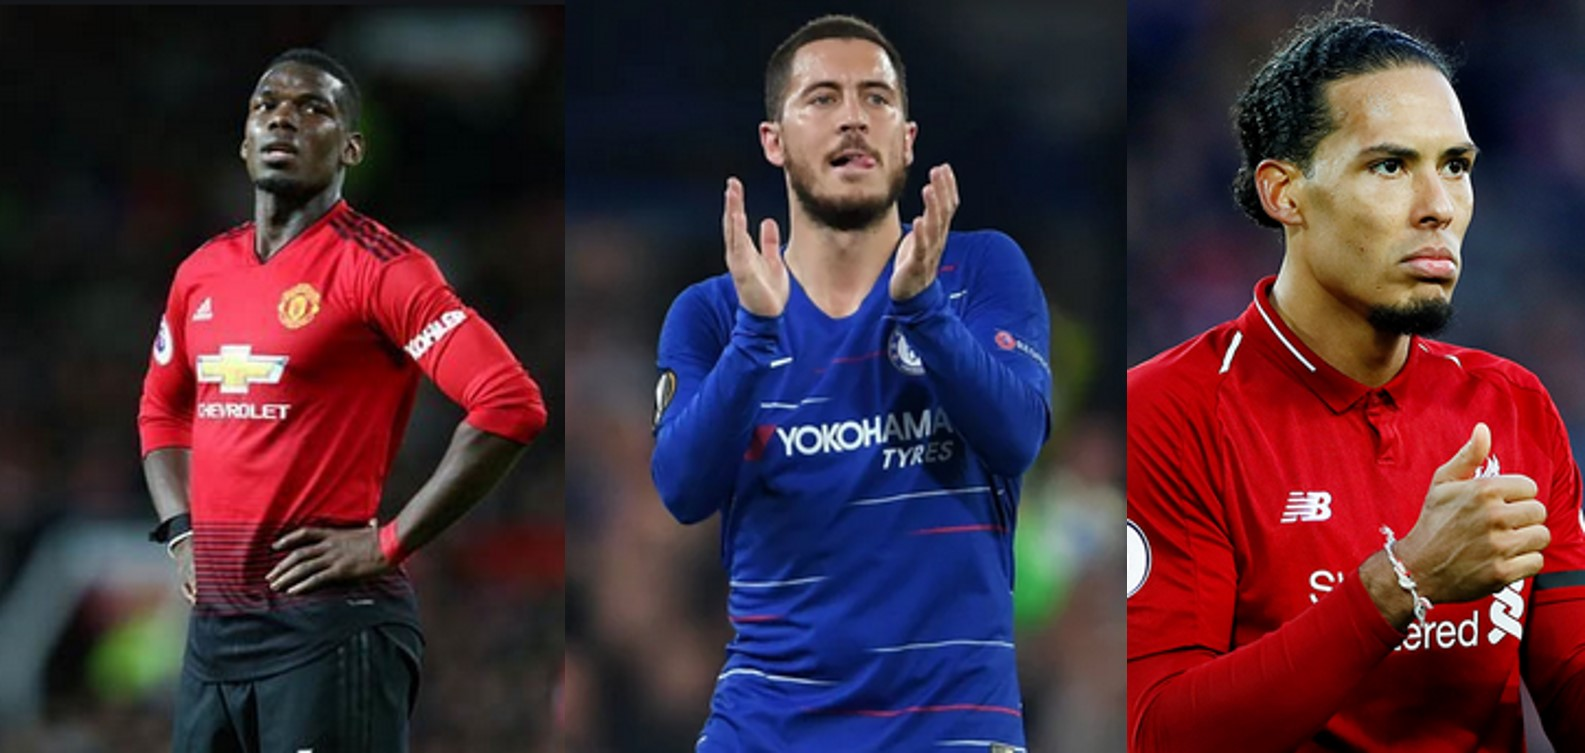 Football fans react as Pogba made Professional Footballers' Association's team of the year, Hazard omitted